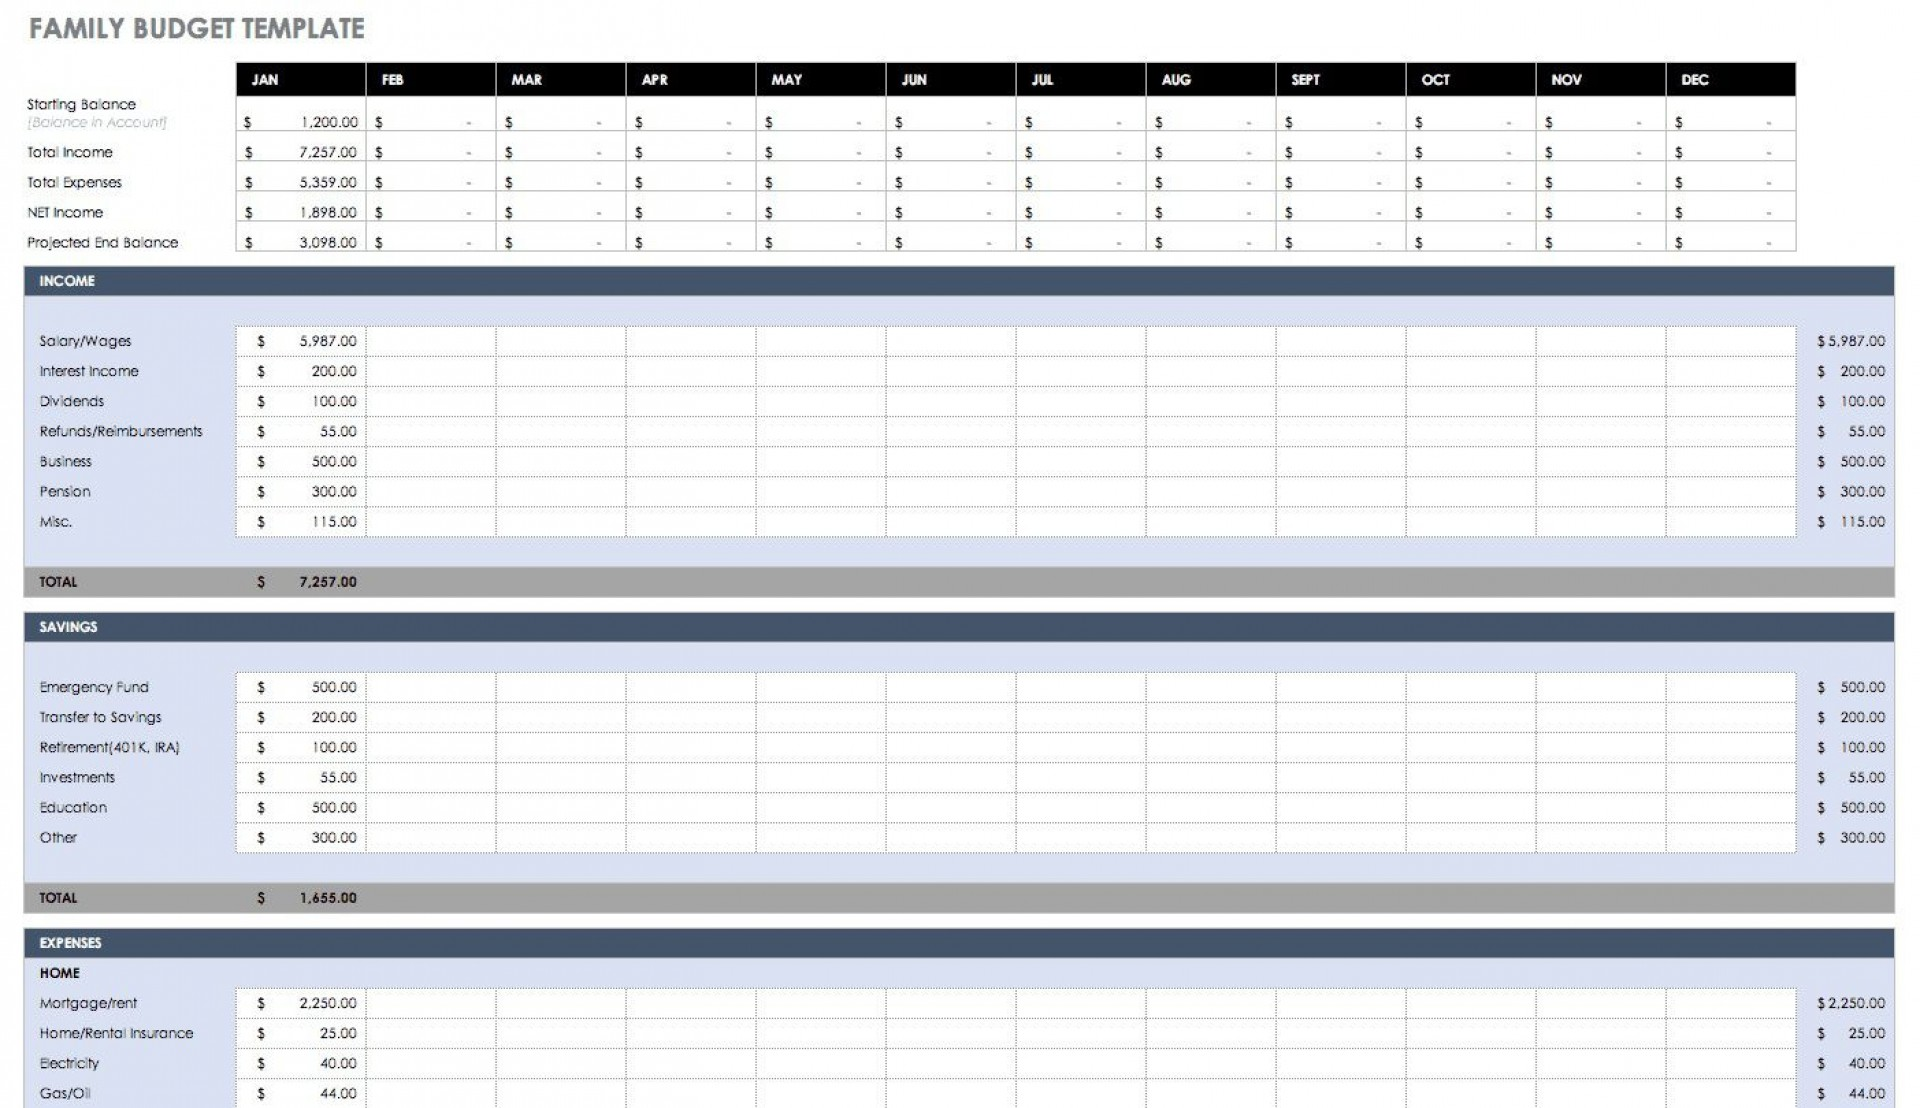 005 Fearsome Budgeting Template In Excel High Def  Training Budget Free Download Project1920